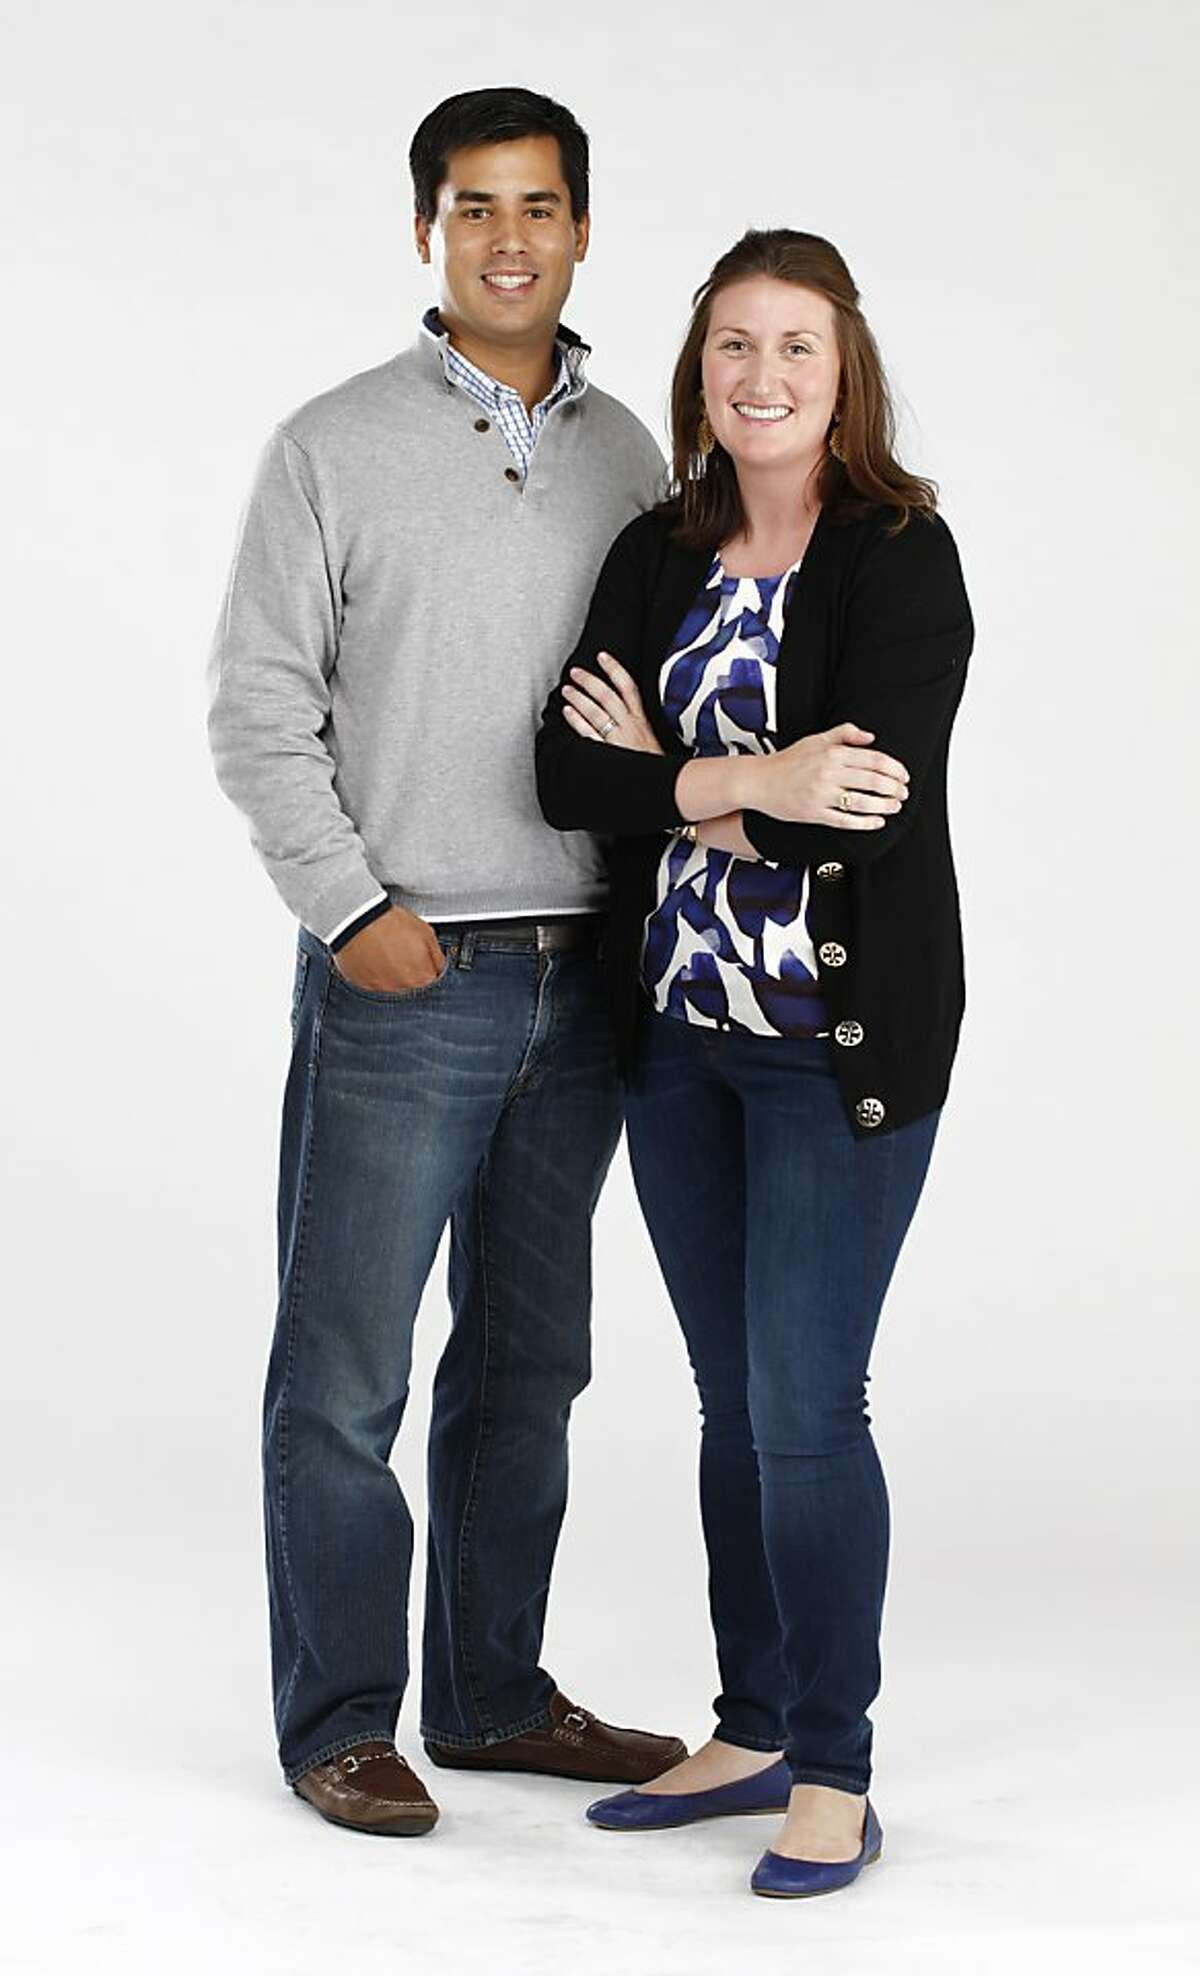 Matt and Chrissy Droessler, seen on Tuesday, July 30, 2013 in San Francisco, Calif., are in this week's Stylemaker Spotlight.